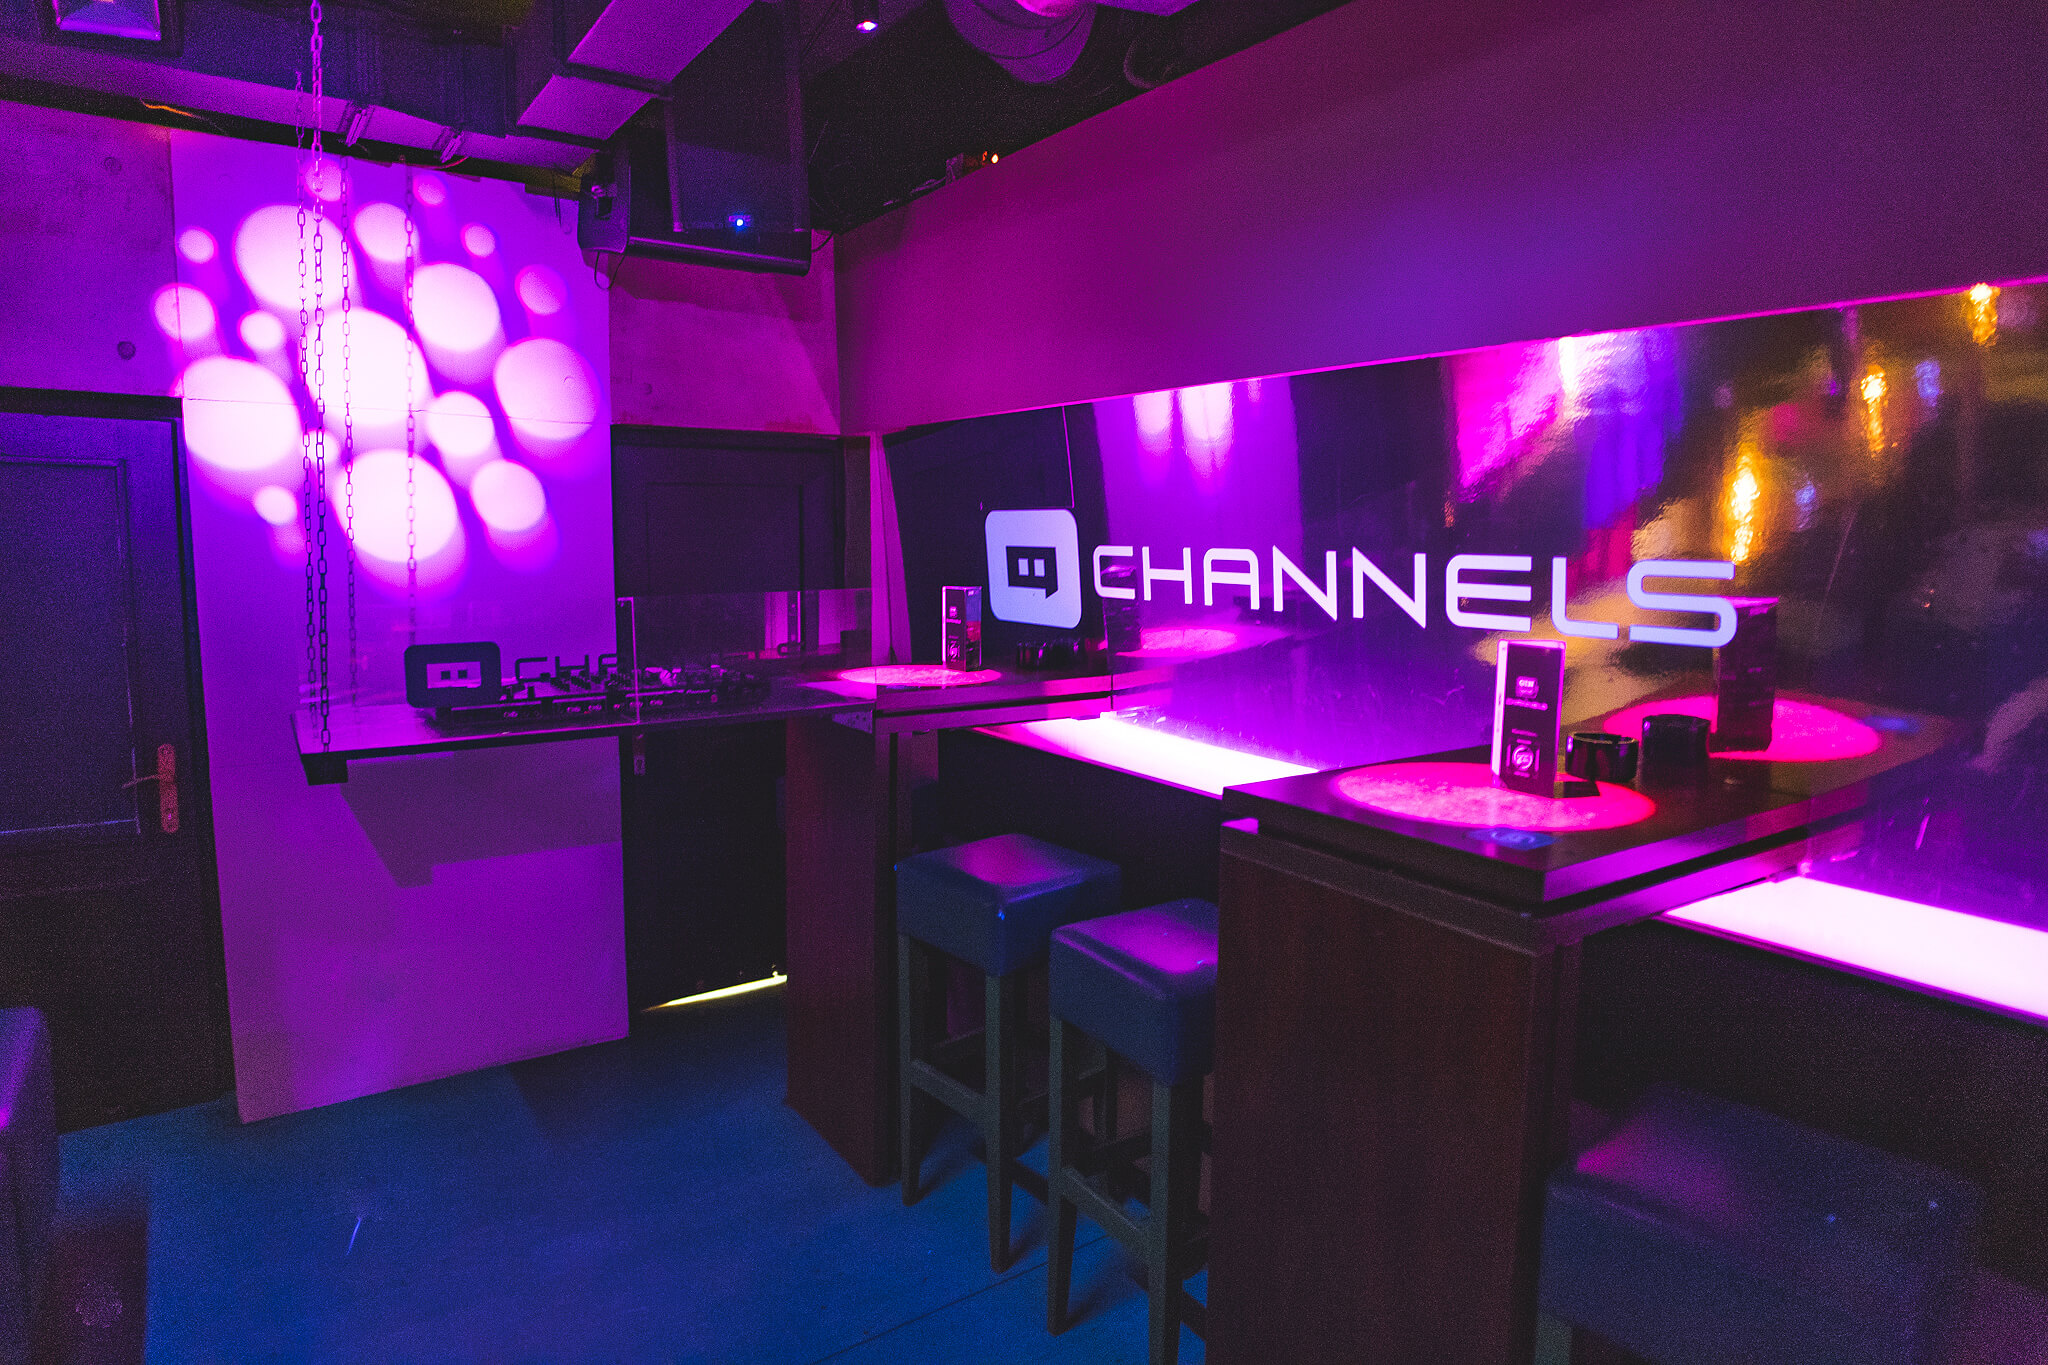 Channels club interior5